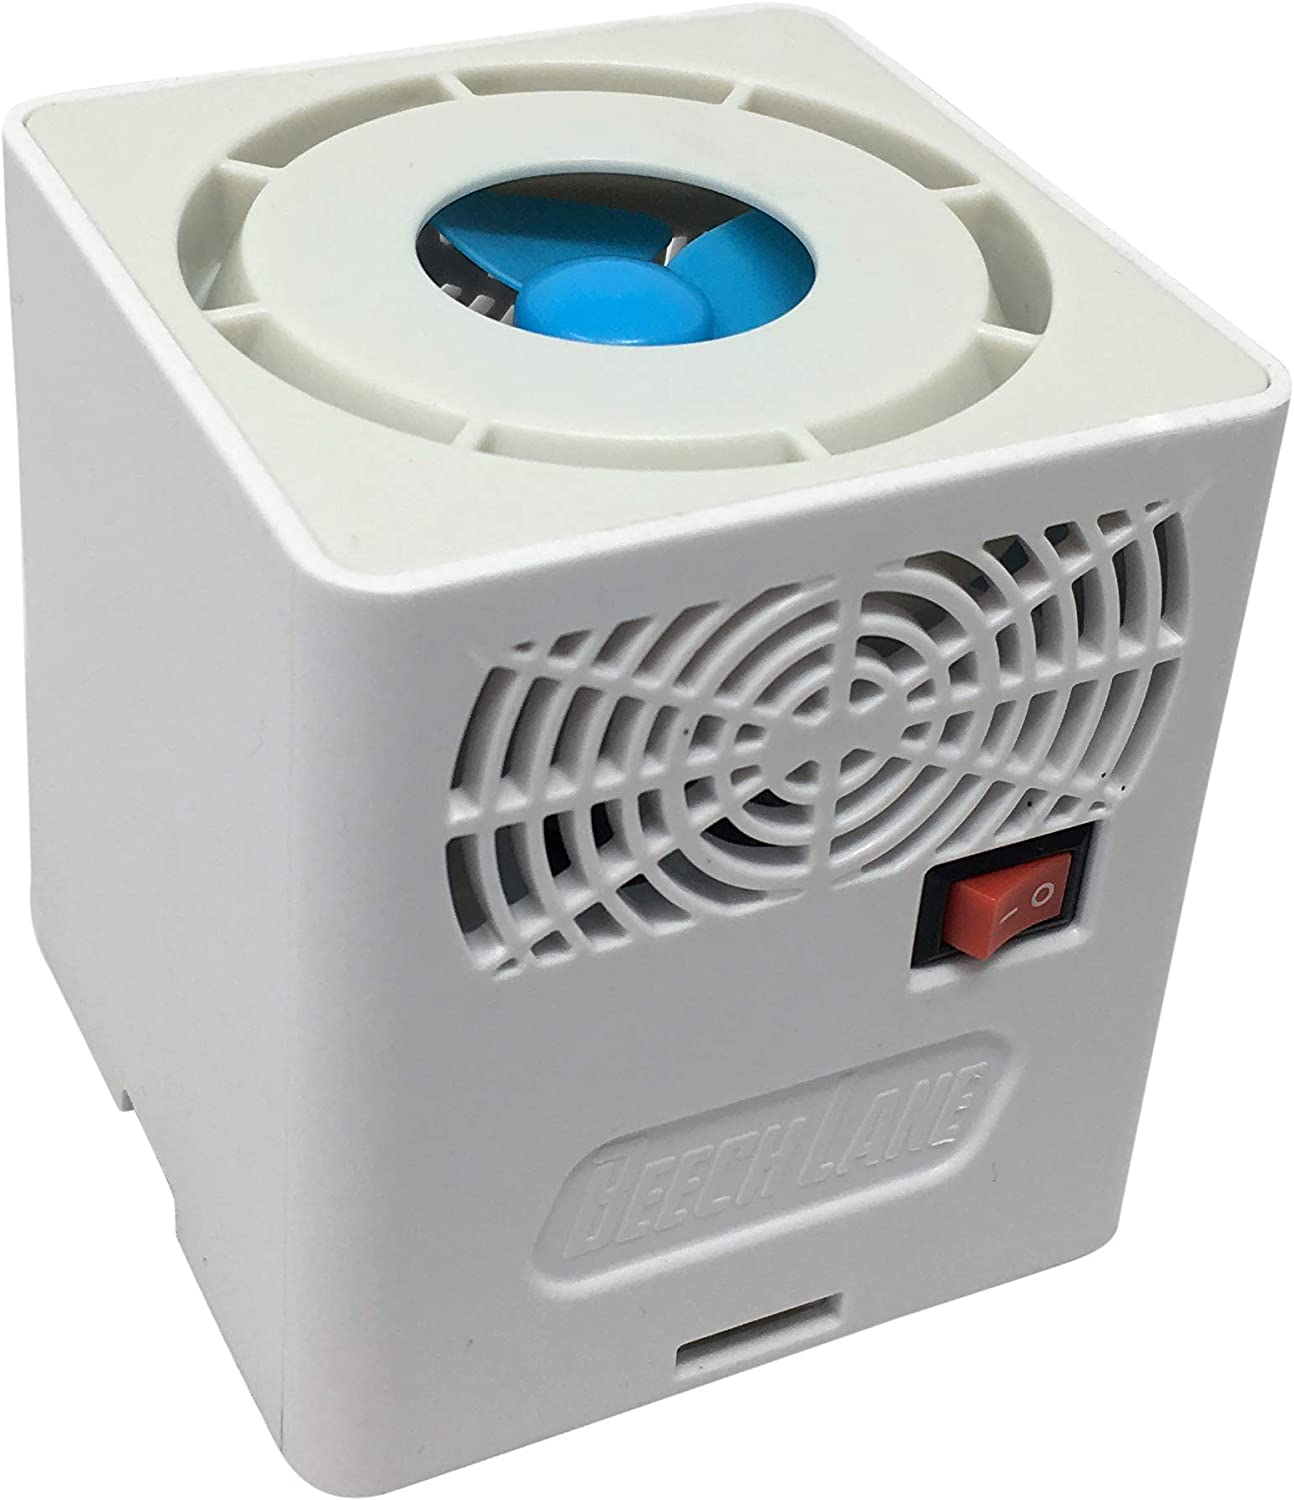 Beech Lane RV Fridge Fan, High Power 3,000 RPM Motor, Easy On and Off Switch, Durable Construction